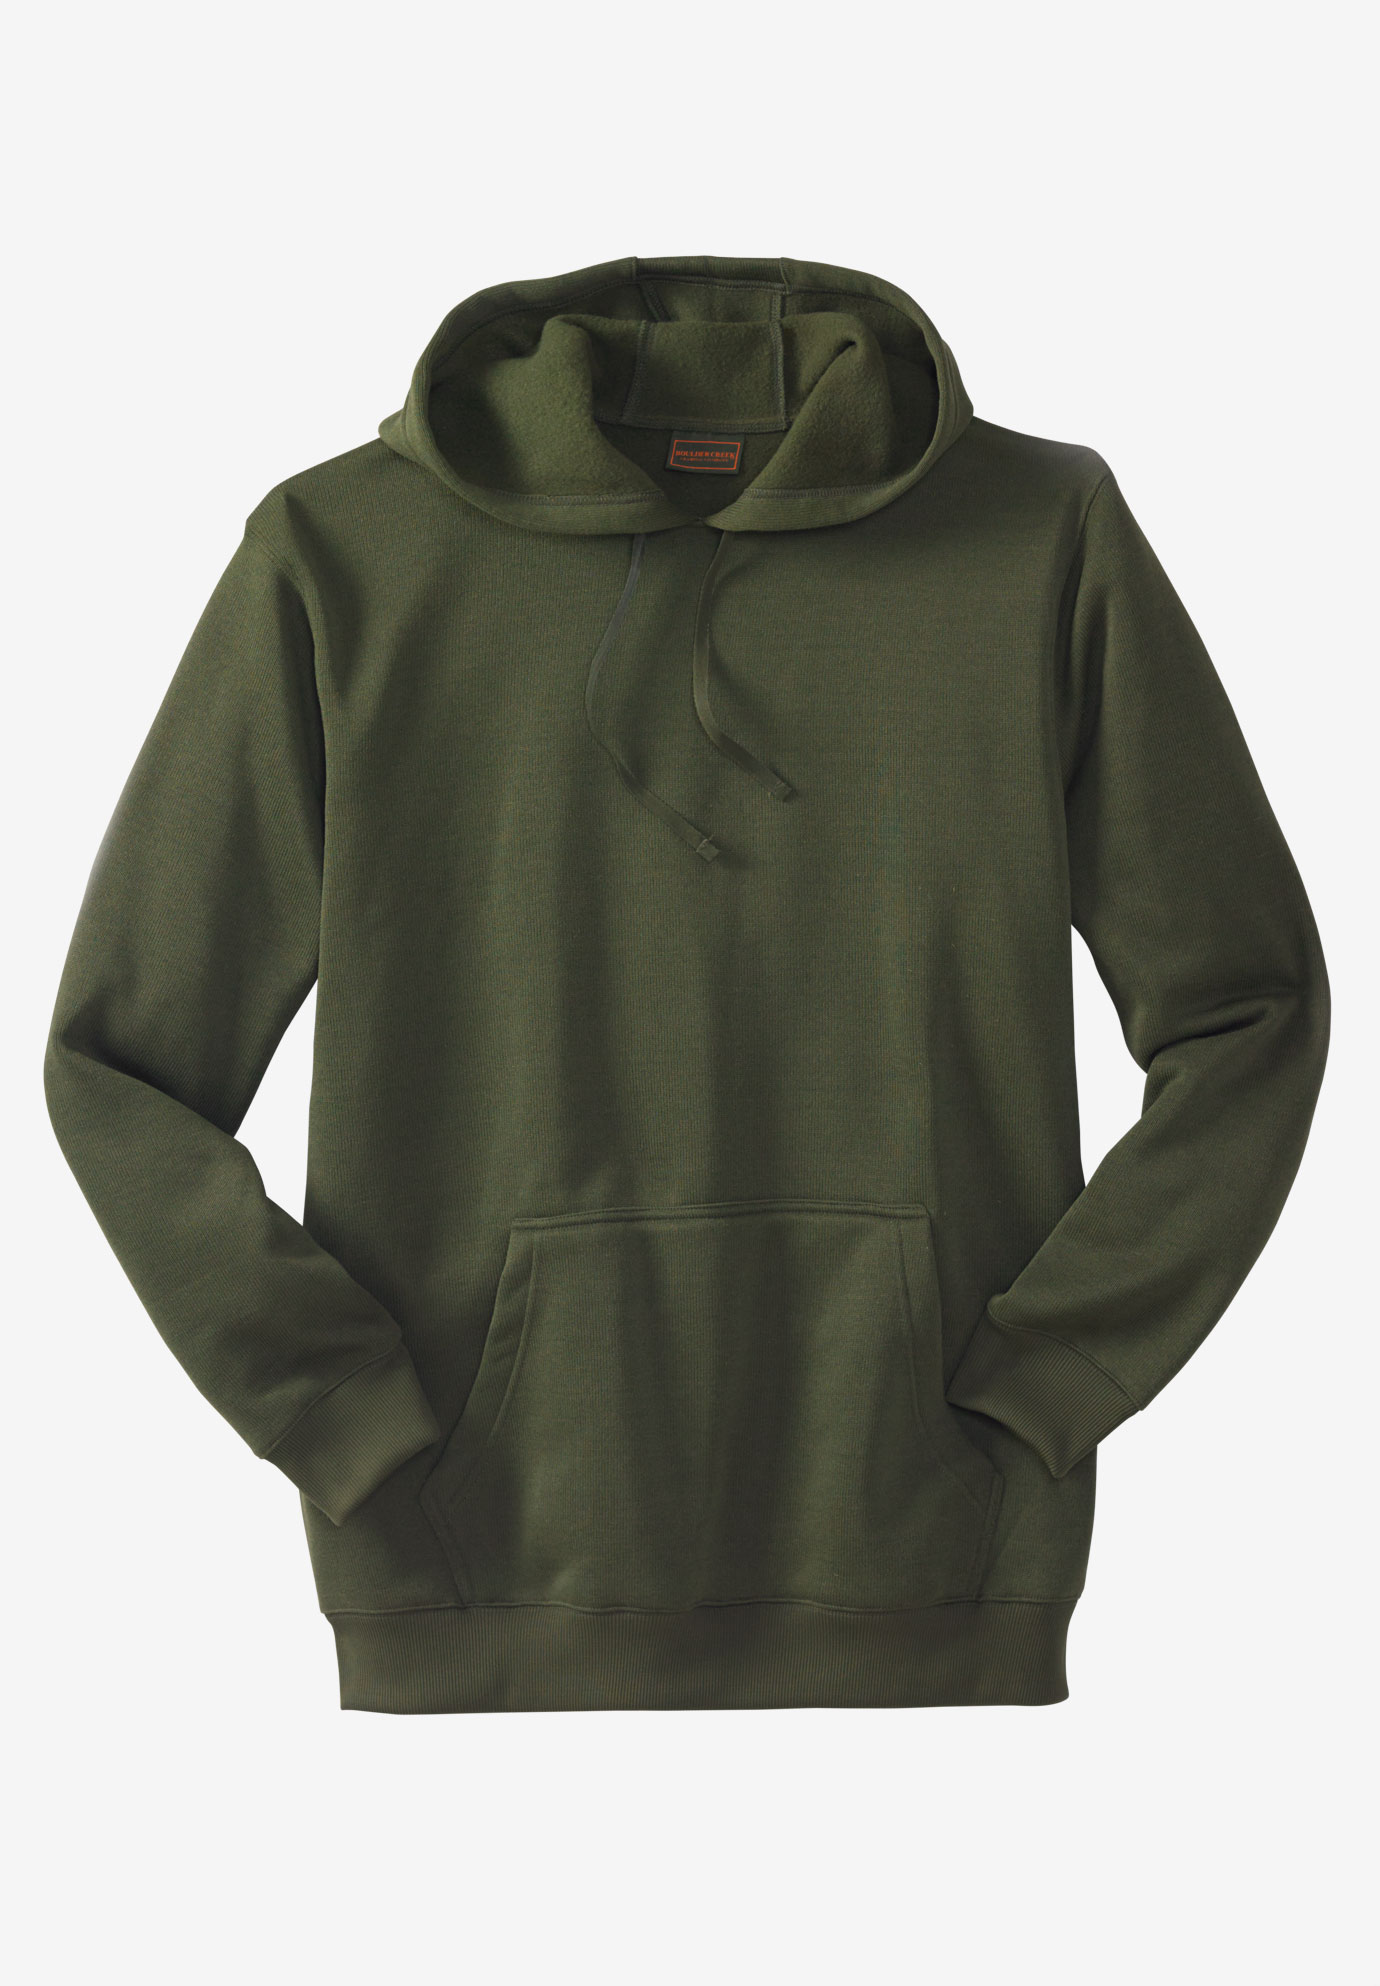 Warmth Without Weight Hoodie by Boulder Creek®,